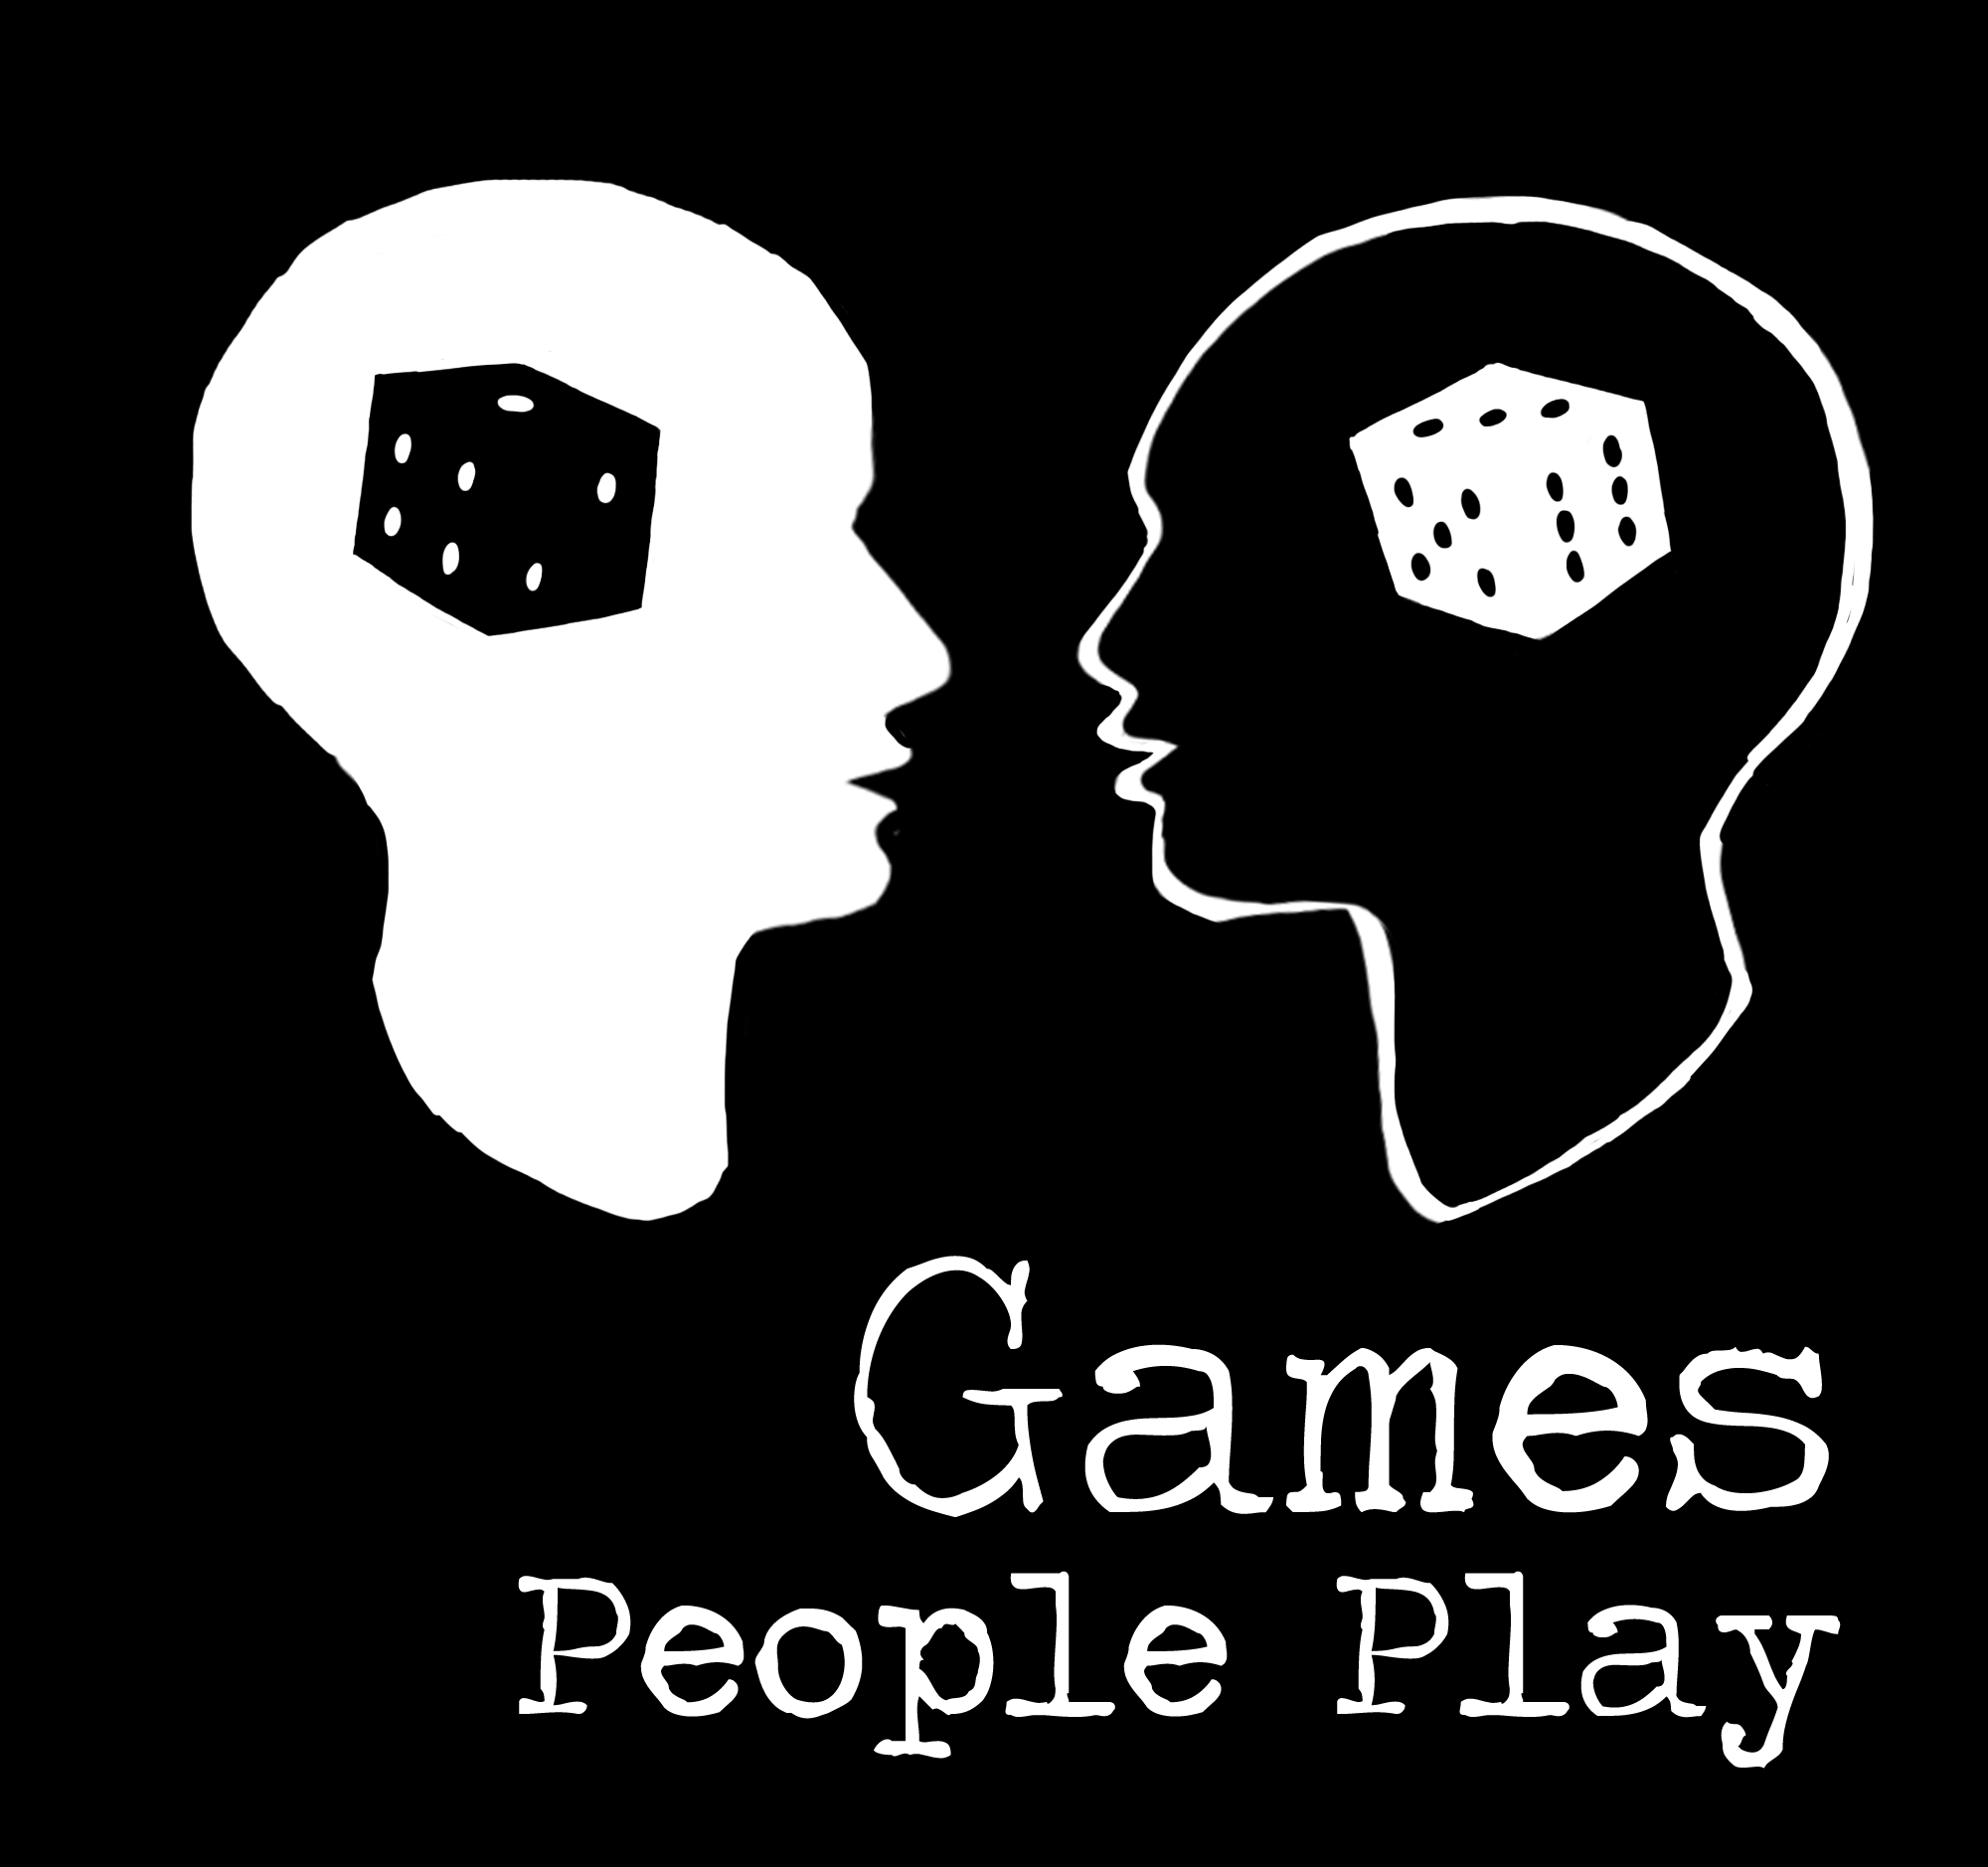 Episode 8: The Party Game